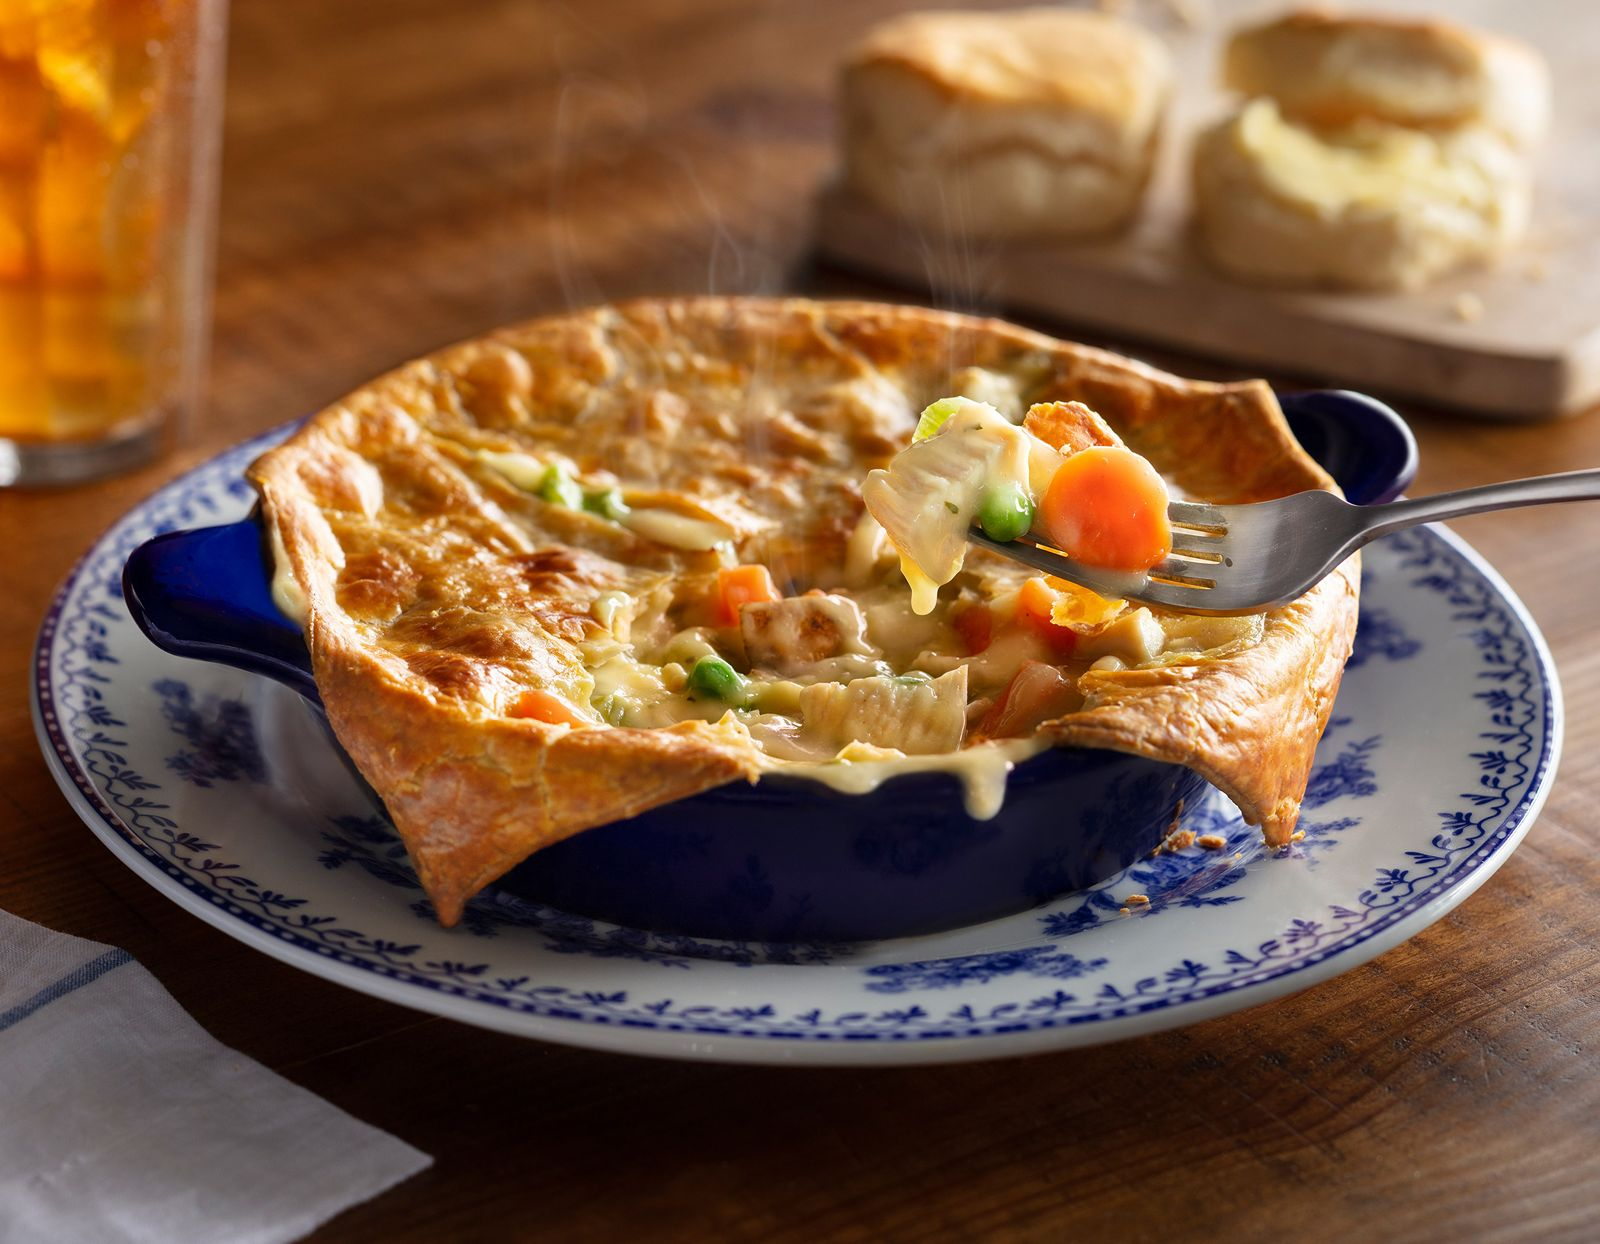 Cracker Barrel Old Country Store Chicken Pot Pie